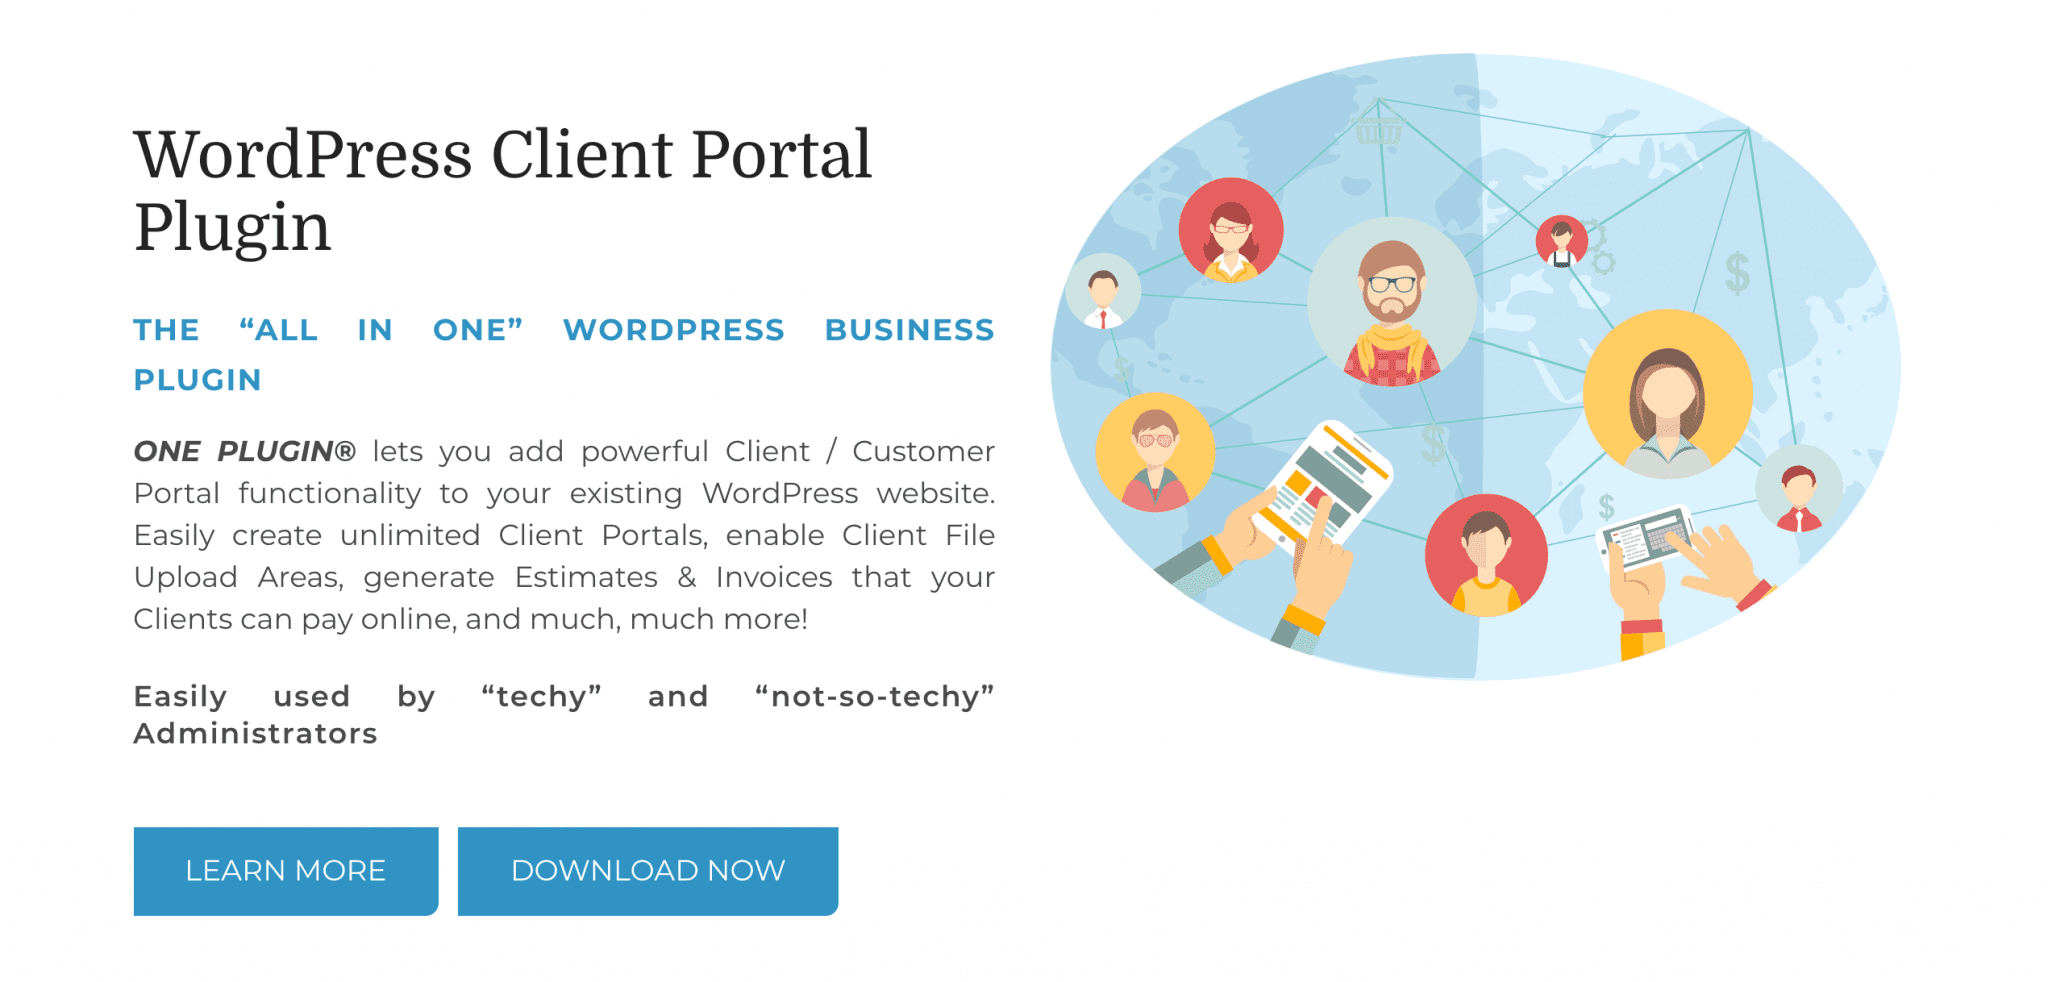 The Wp-Client plugin homepage.